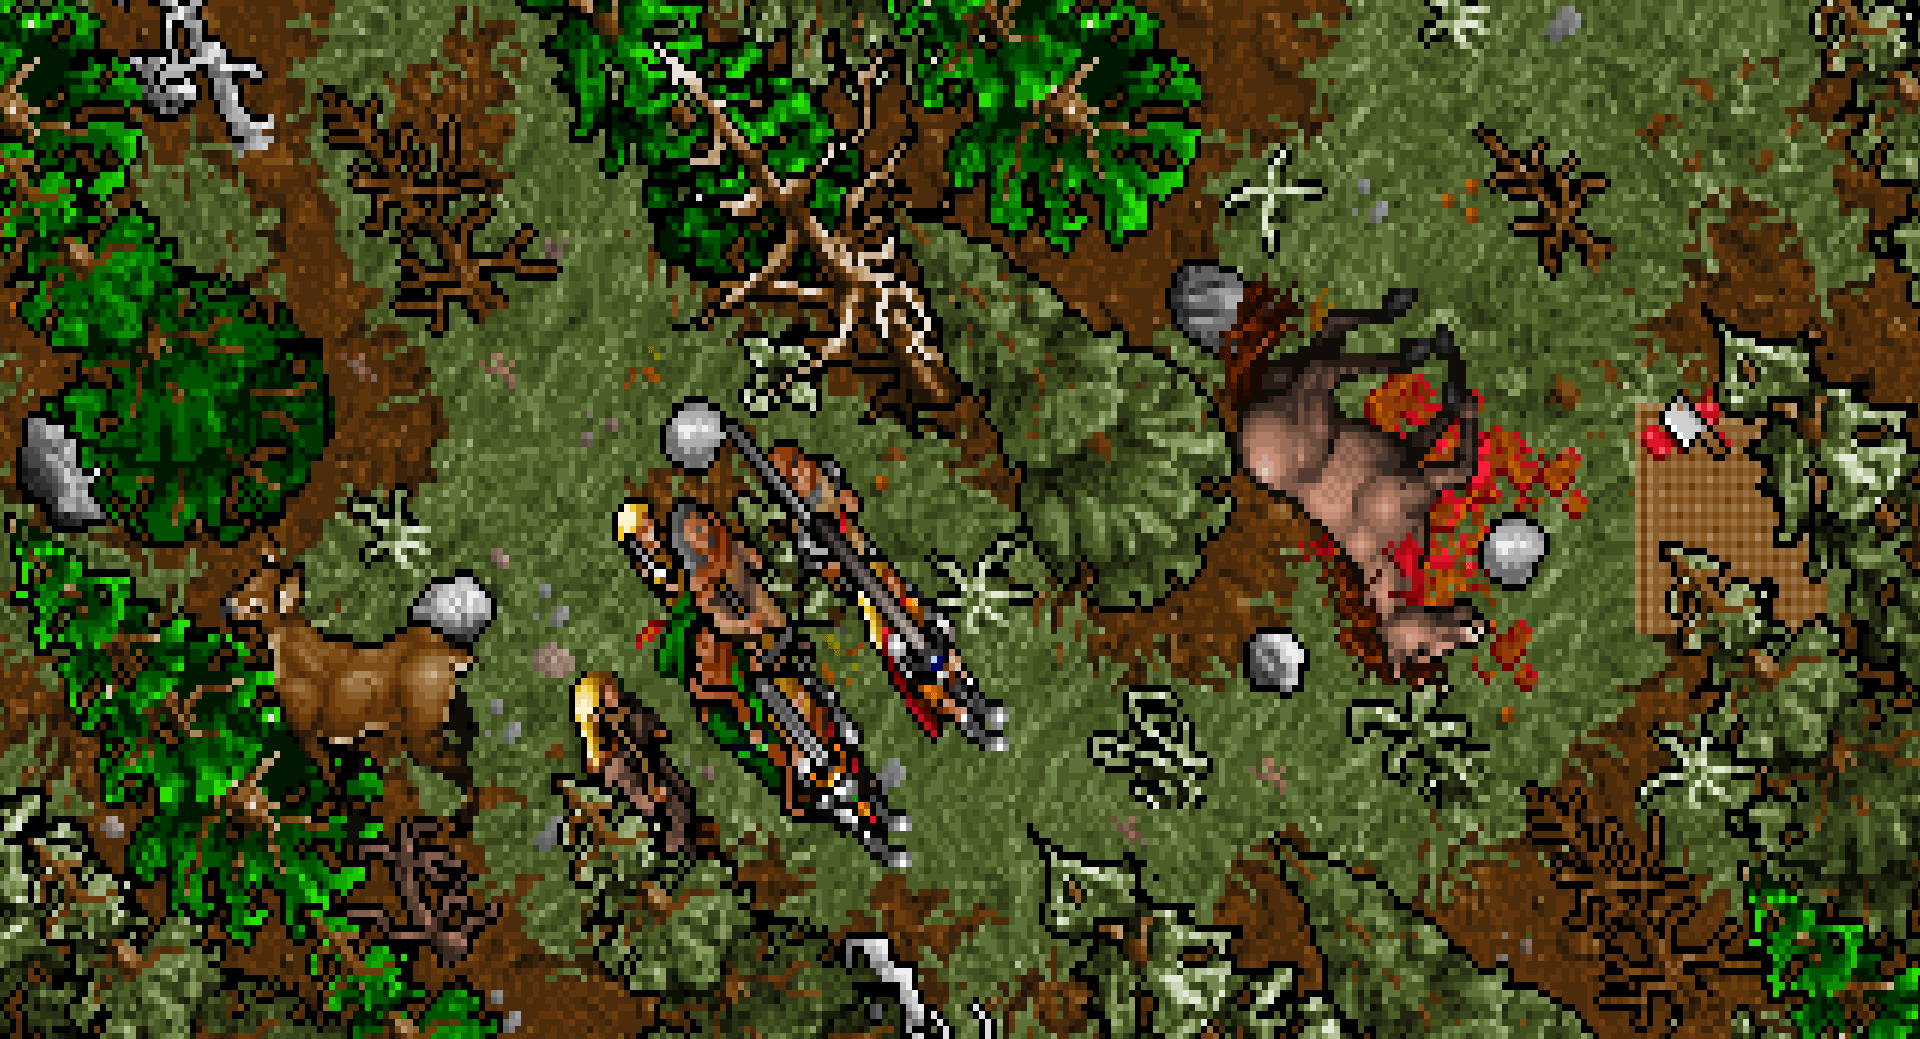 A forest from Ultima VII.